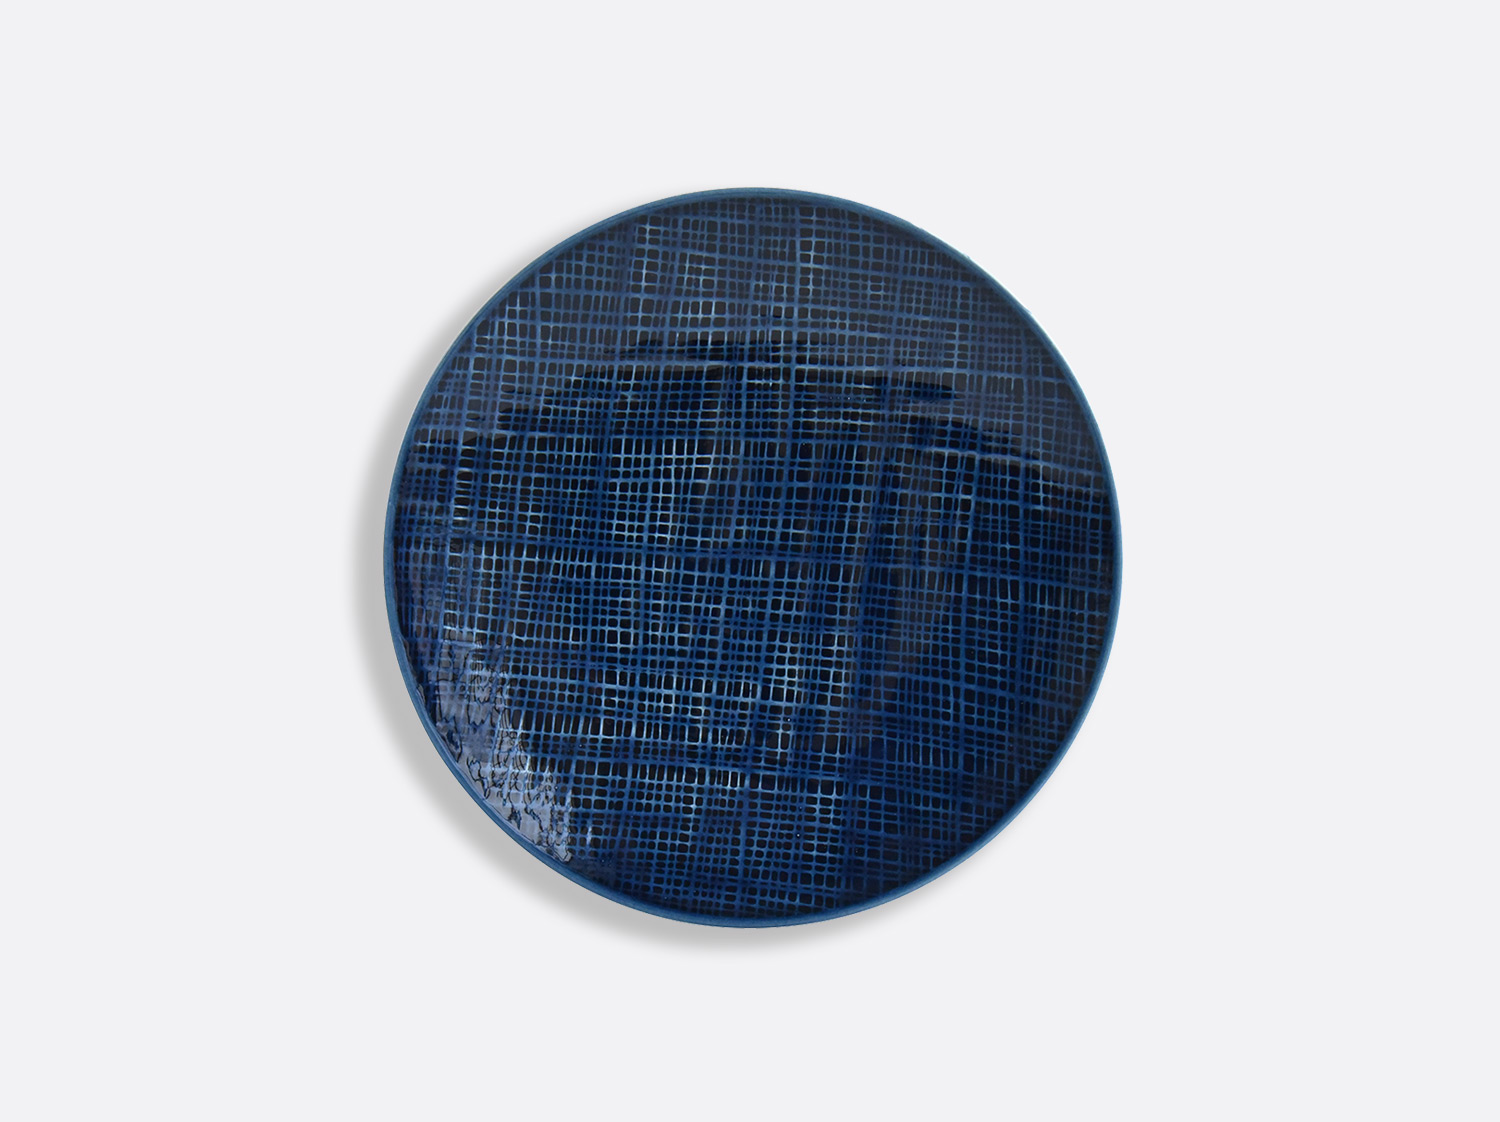 China Bleu Jean plate 16 cm of the collection ORGANZA BLEU JEANS | Bernardaud